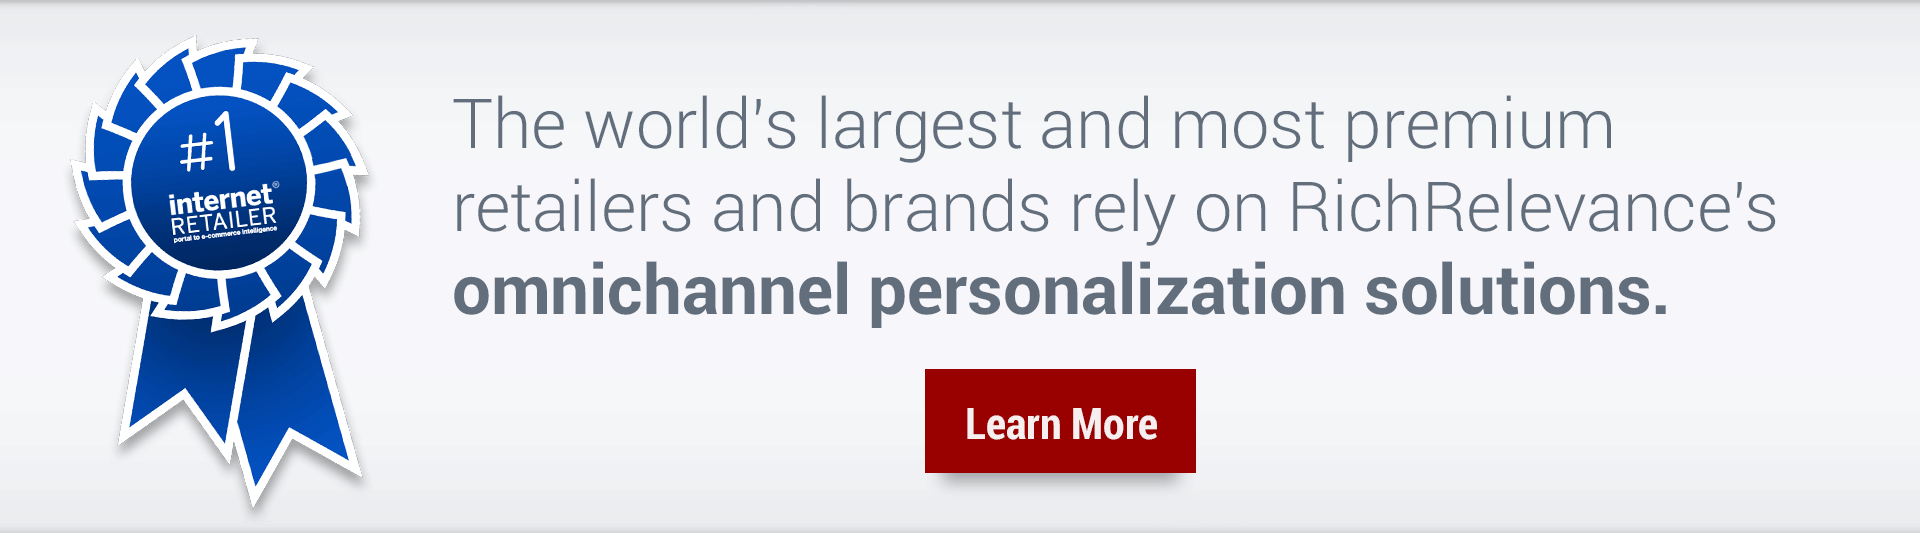 Learn more about RichRelevance's leading personalization solutions